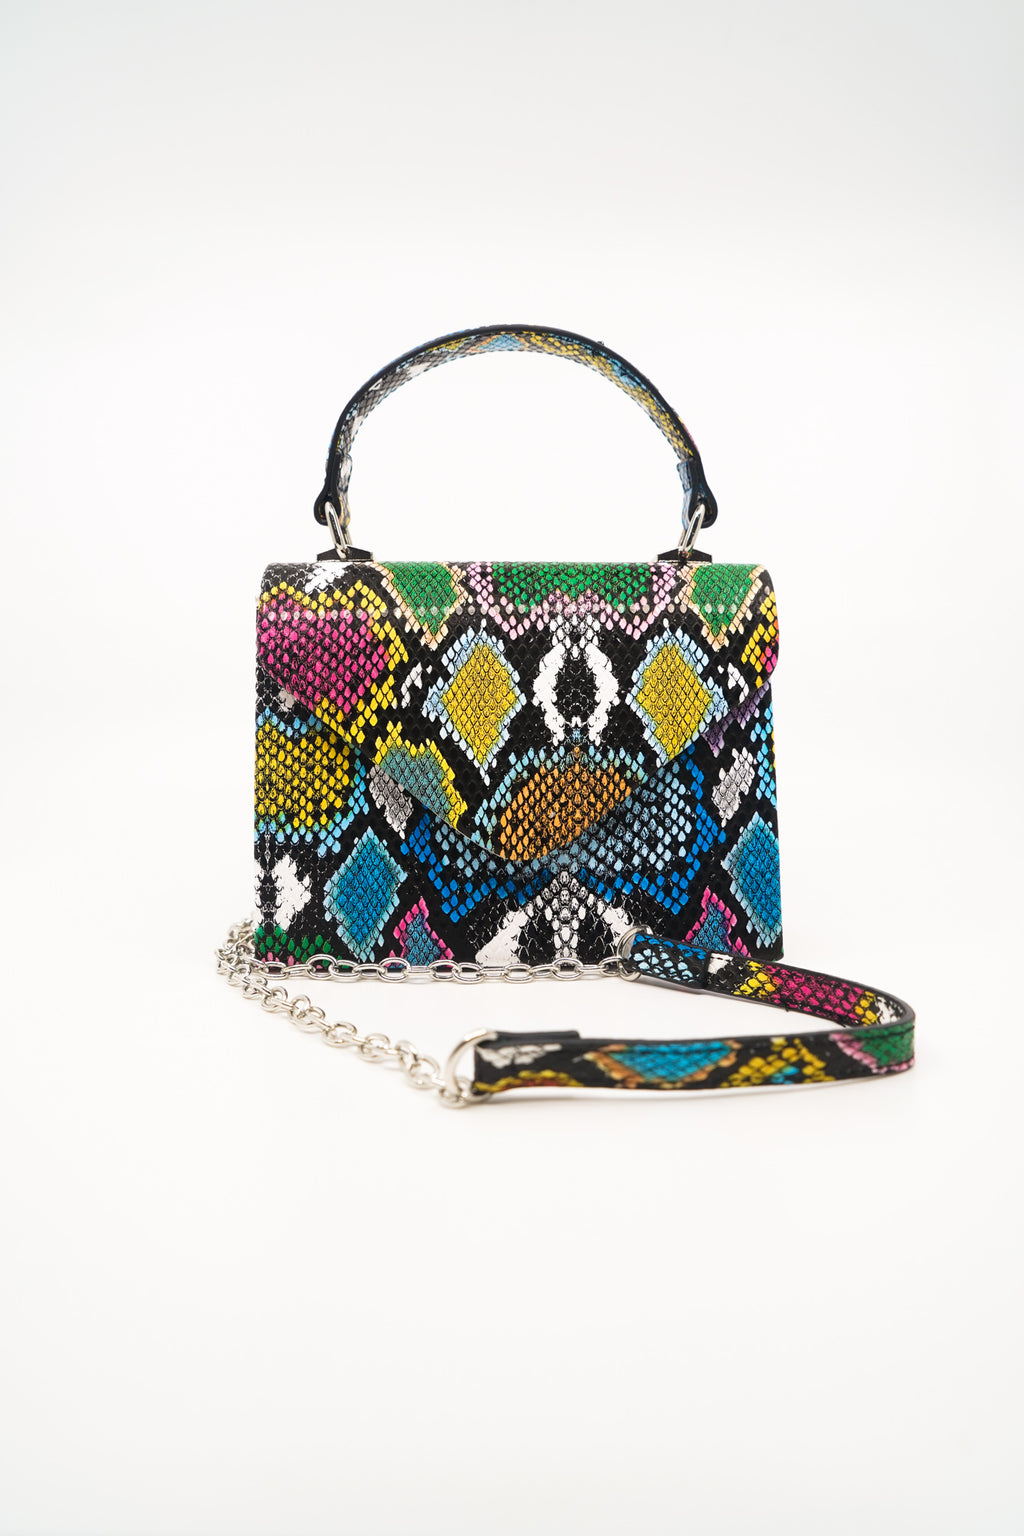 Snakeskin Satchel Bag with Strap in Black/Multi - Fashion House USA